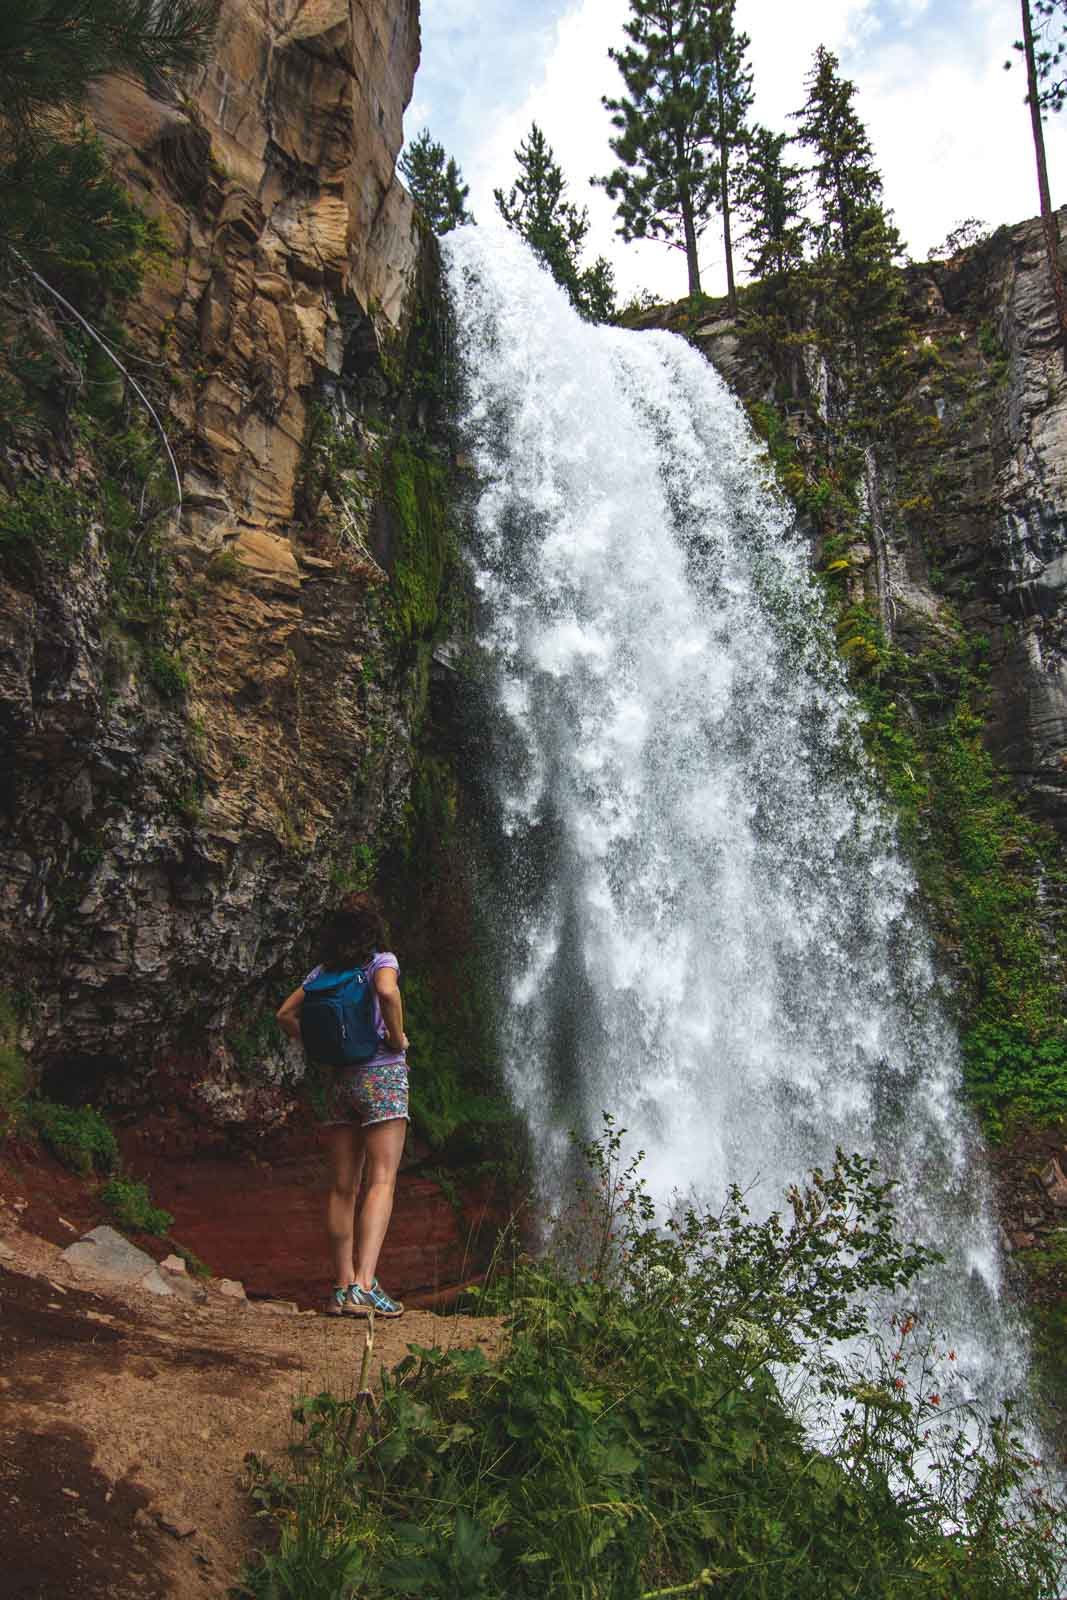 Visit the bottom of Tumalo Falls when you're on your Tumalo Falls hike.